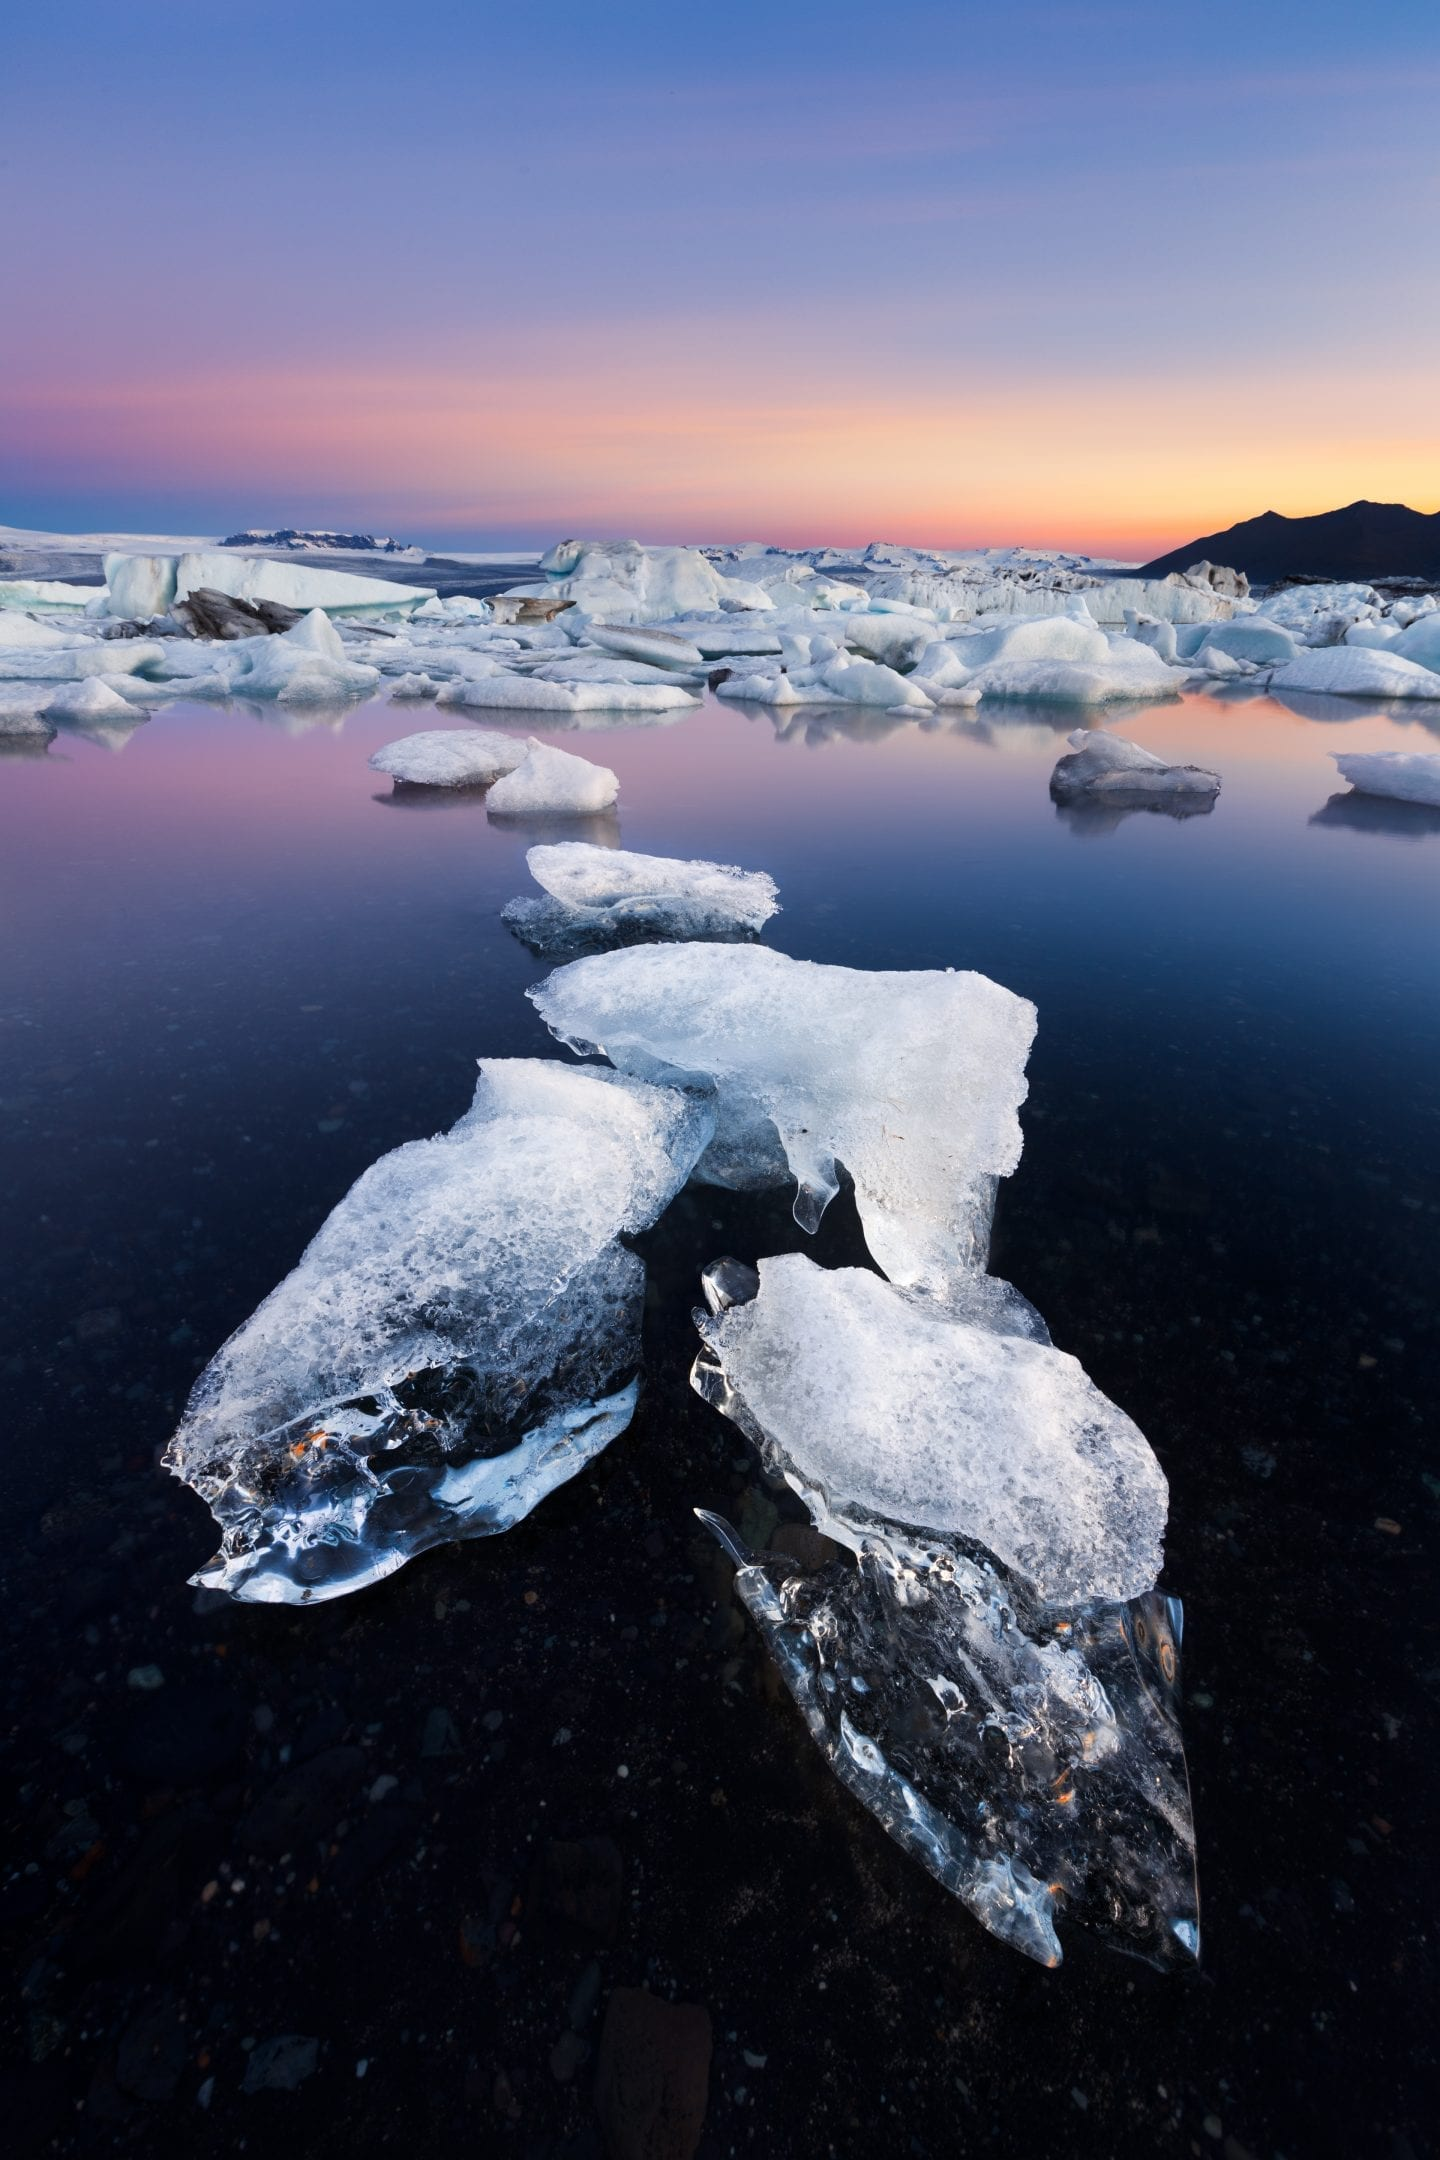 European Bucket list stop, glacier lagoon in Iceland